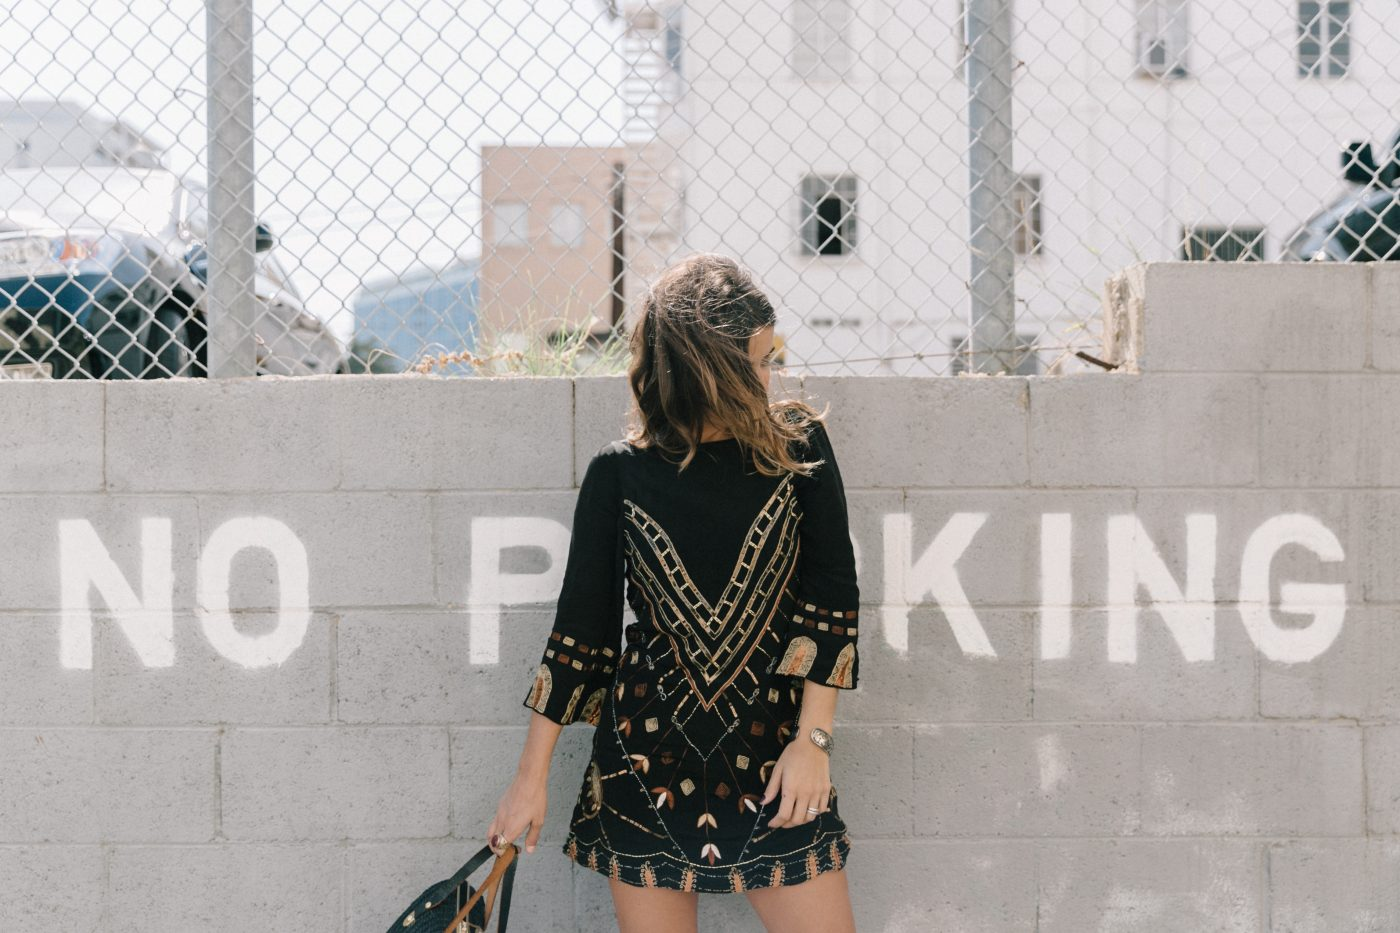 Boho_Dress-Jens_Pirate_Booty-Black_Beaded_Dress-Lace_Up_Sandals-Los_Angeles-Outfit-Collage_Vintage-27